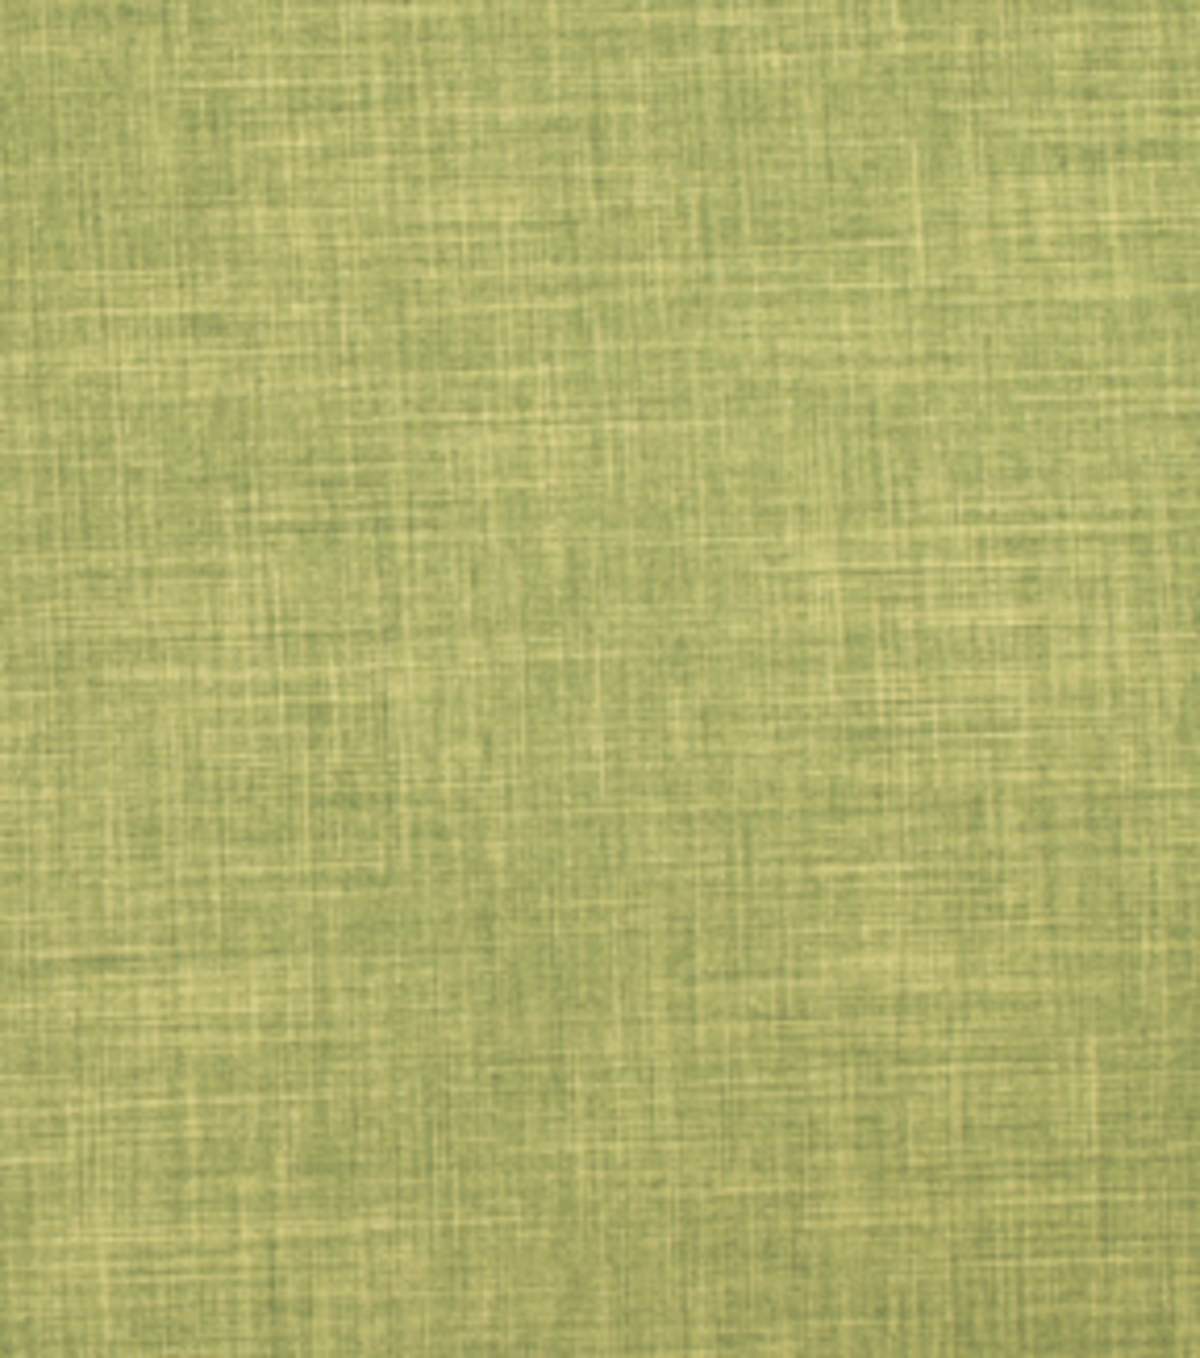 Home Decor 8\u0022x8\u0022 Fabric Swatch-Signature Series Adrift Grass